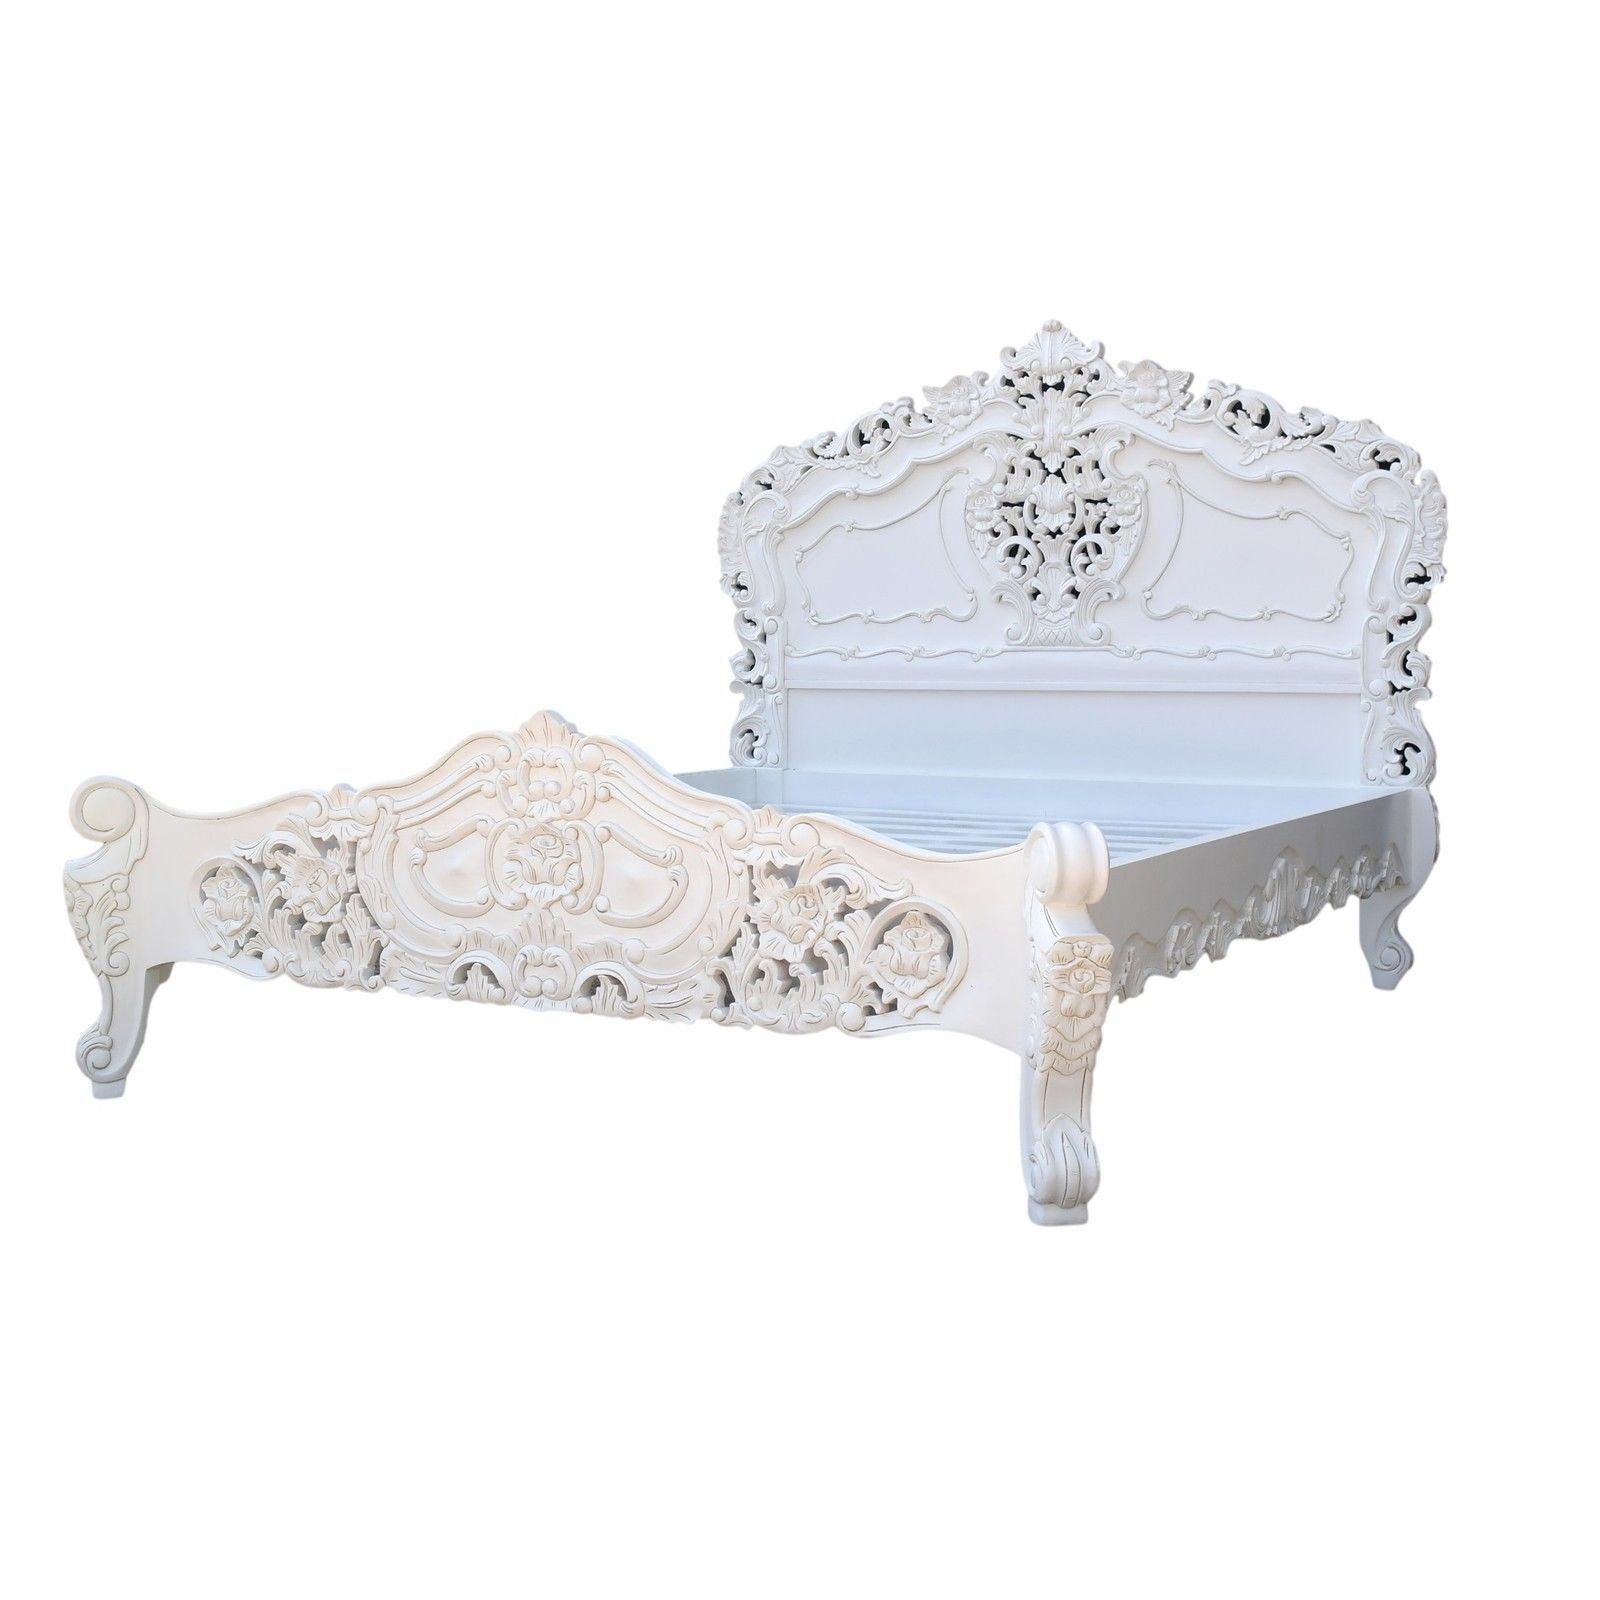 6ft Bed UK